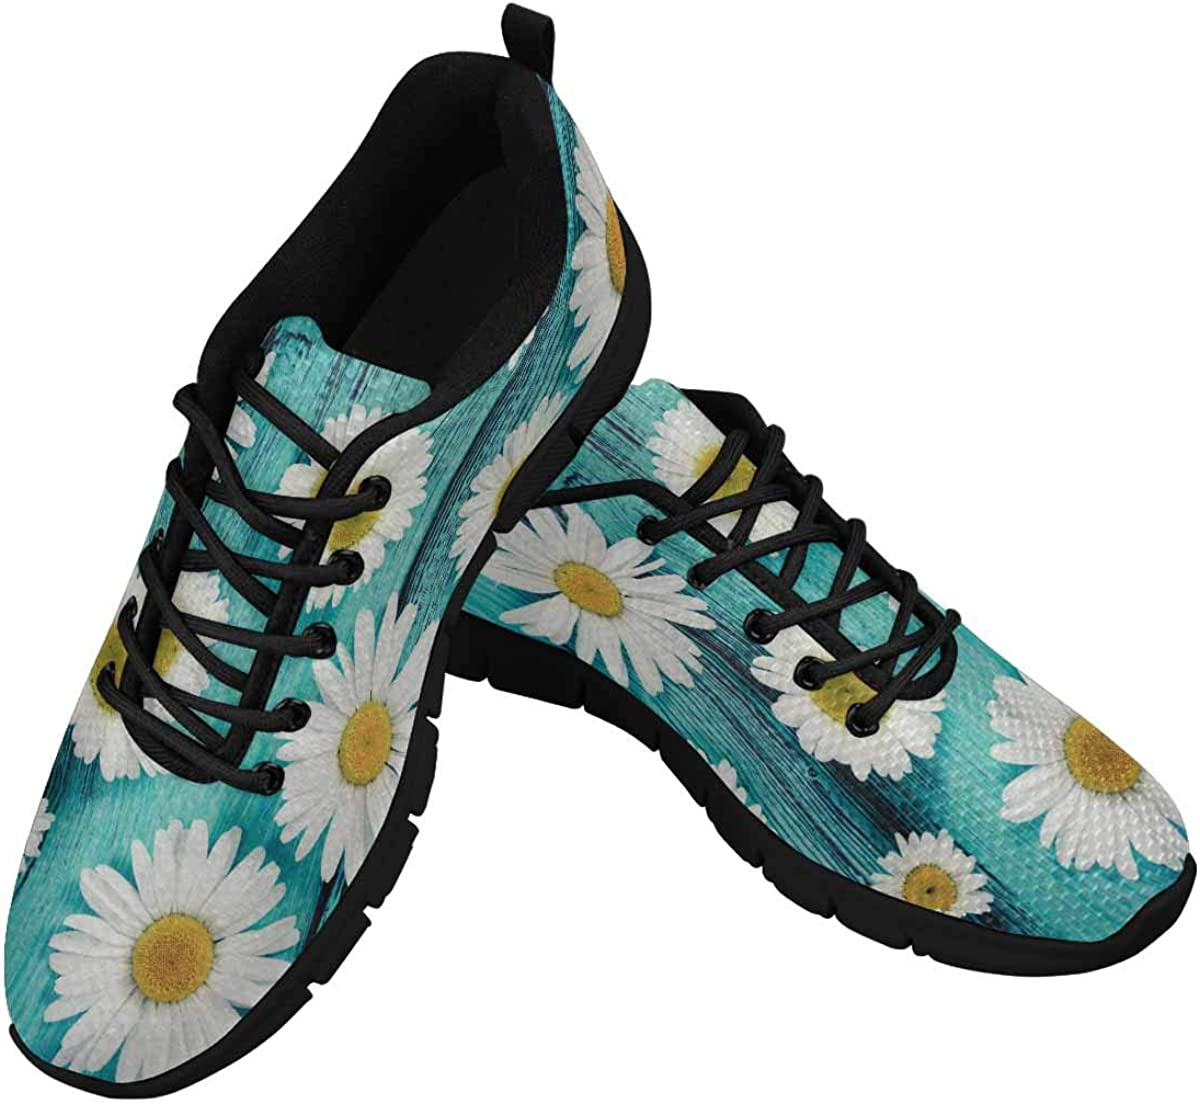 InterestPrint Chamomiles Flowers Women's Athletic Mesh Breathable Casual Sneakers Fashion Tennis Shoes